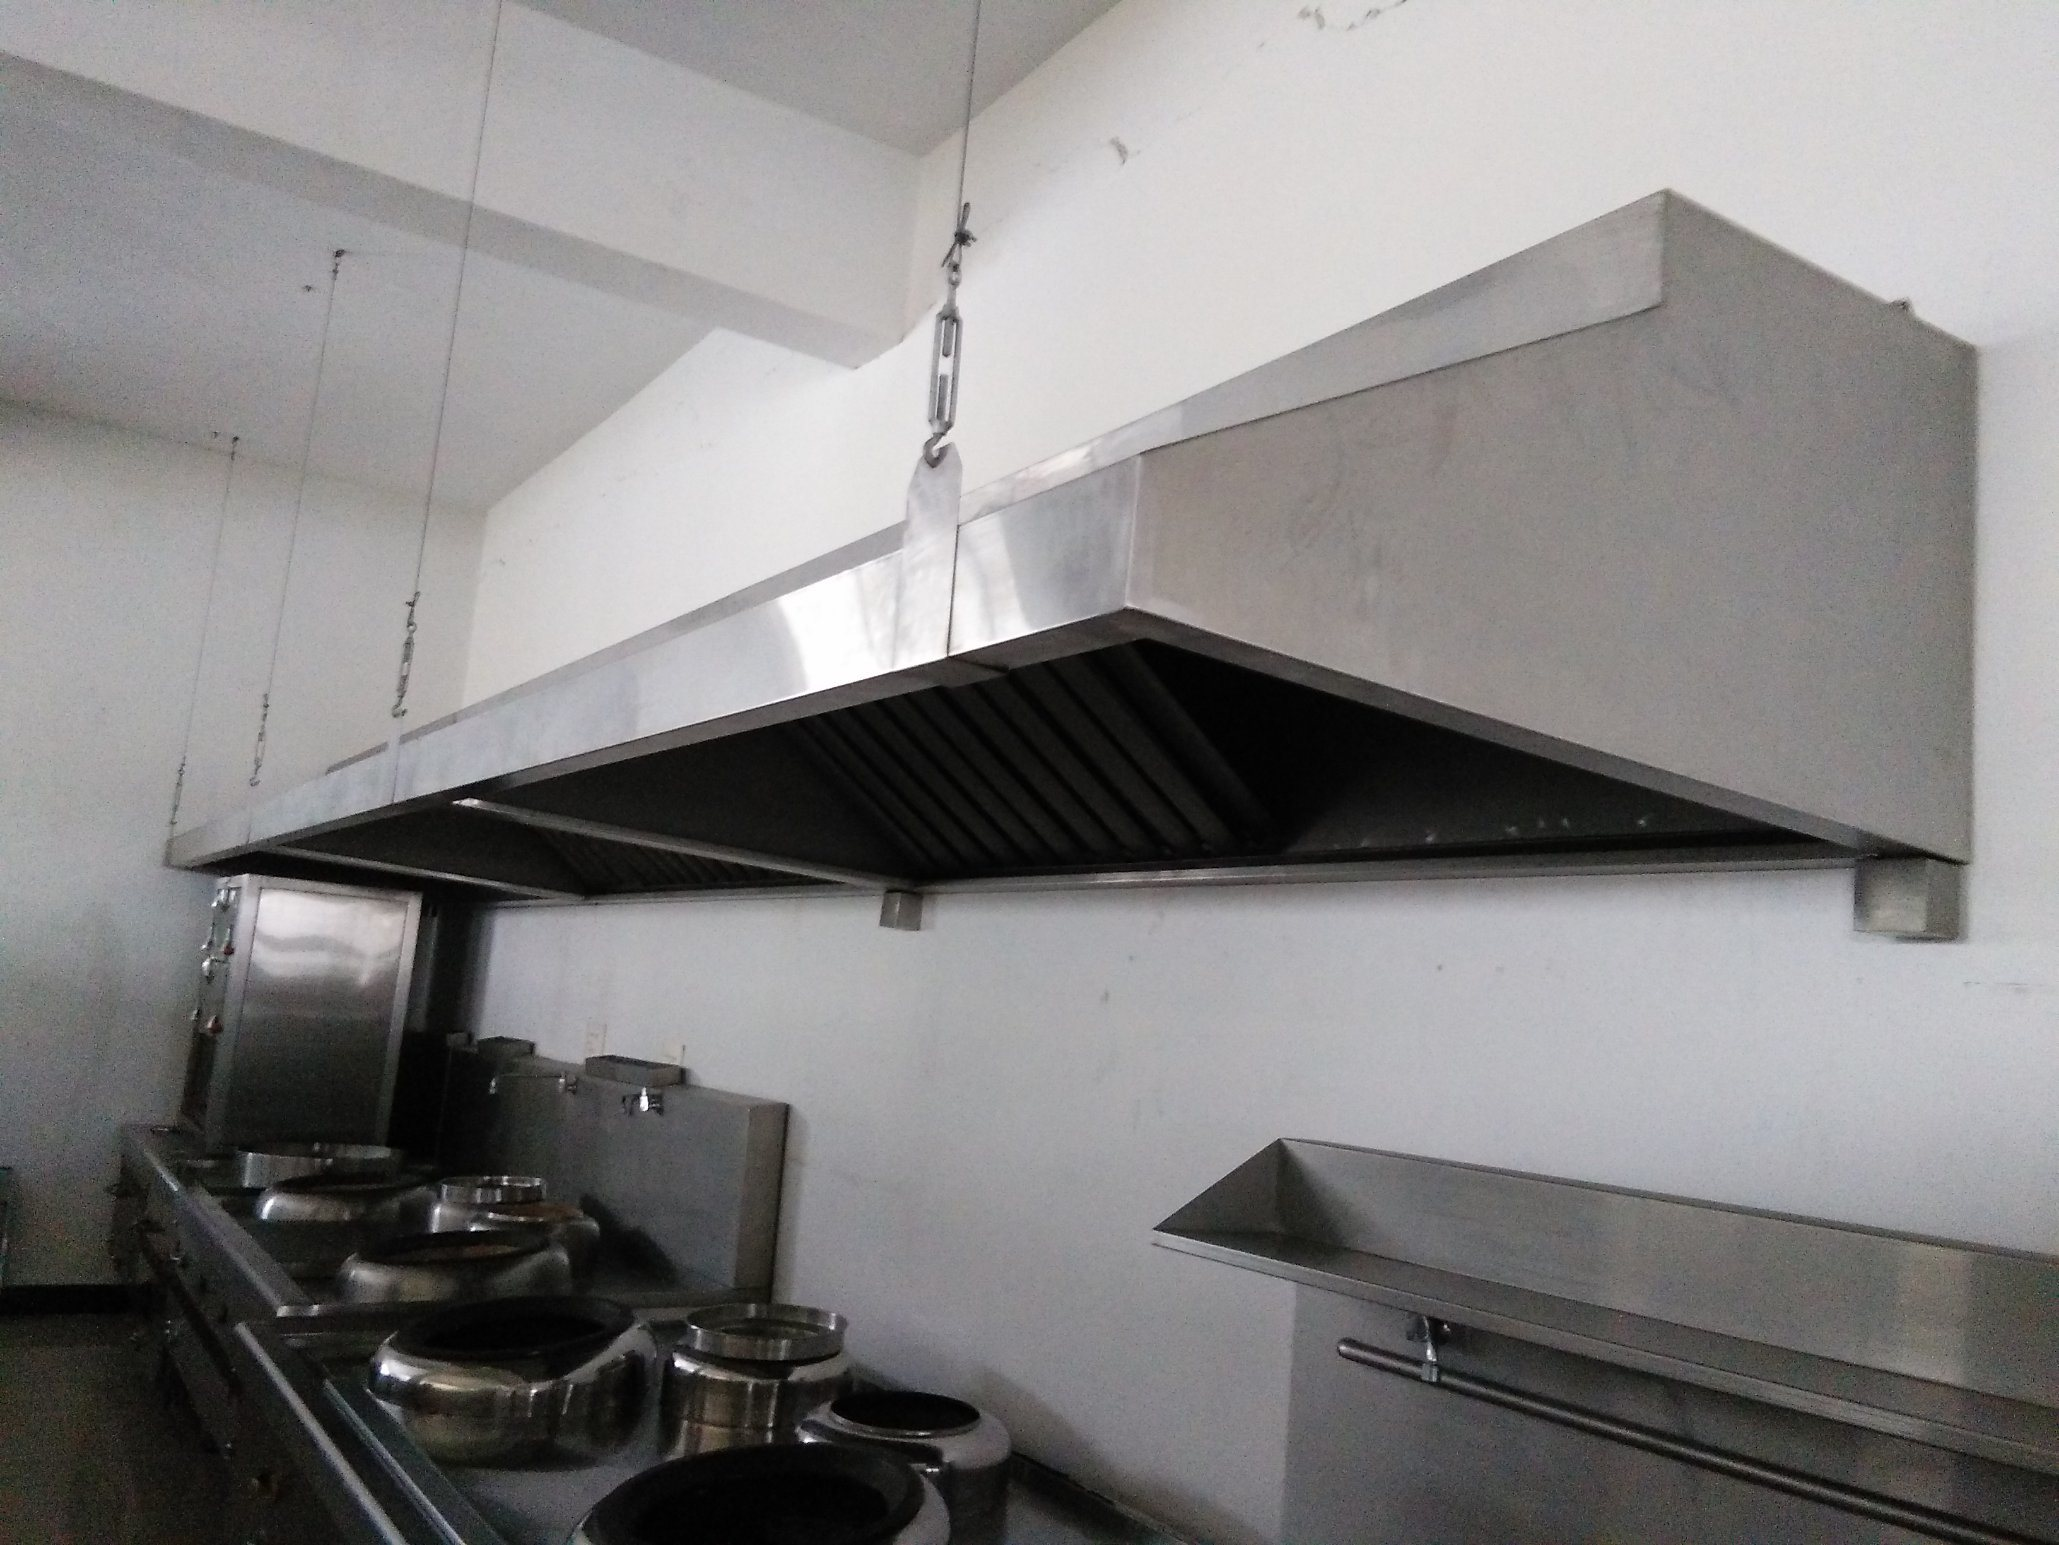 China Commercial Stainless Steel Restaurant Range Hood Photos Pictures Made In China Com